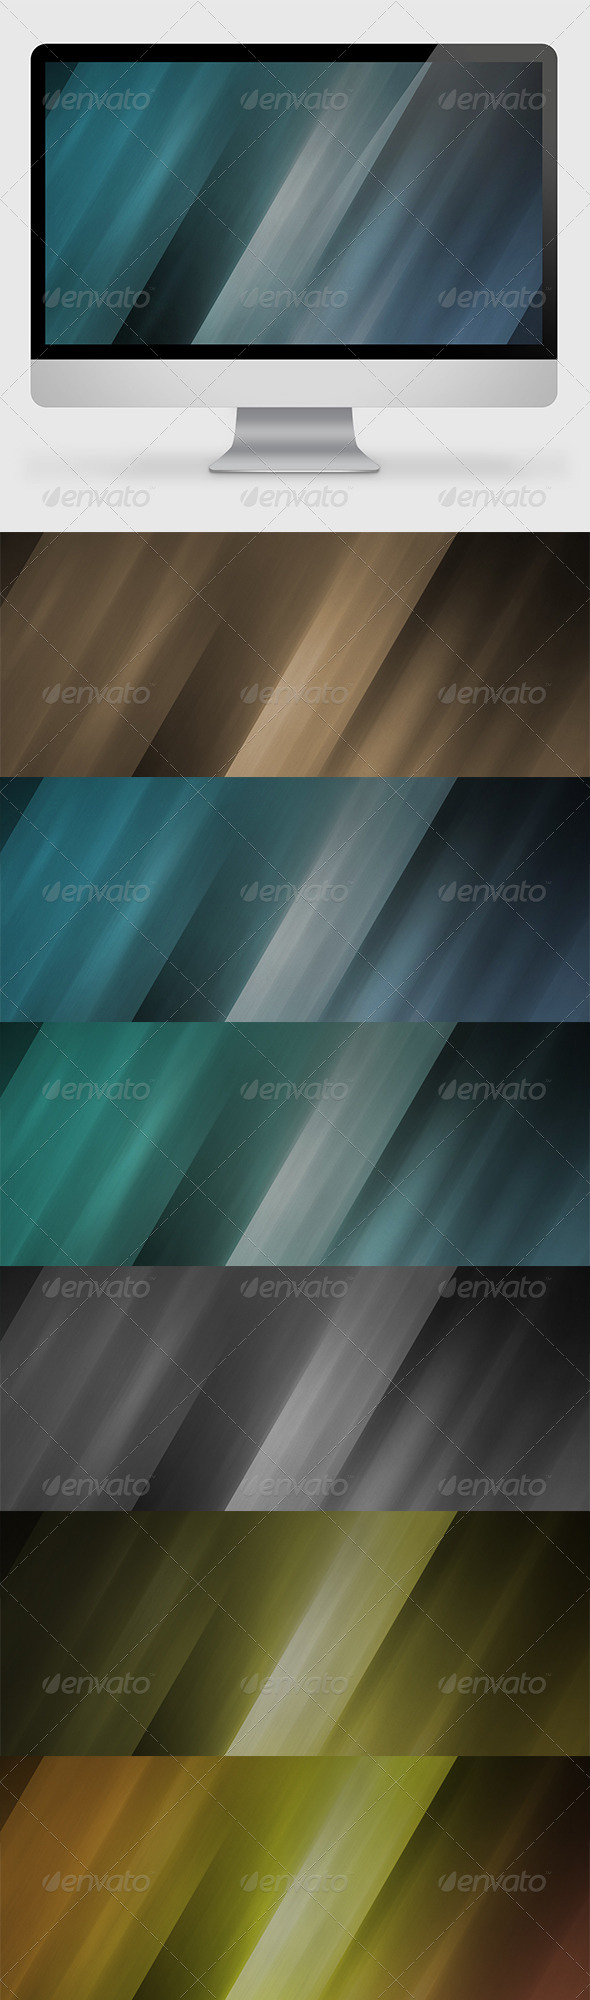 GraphicRiver Abstract Striped Backgrounds 7292937